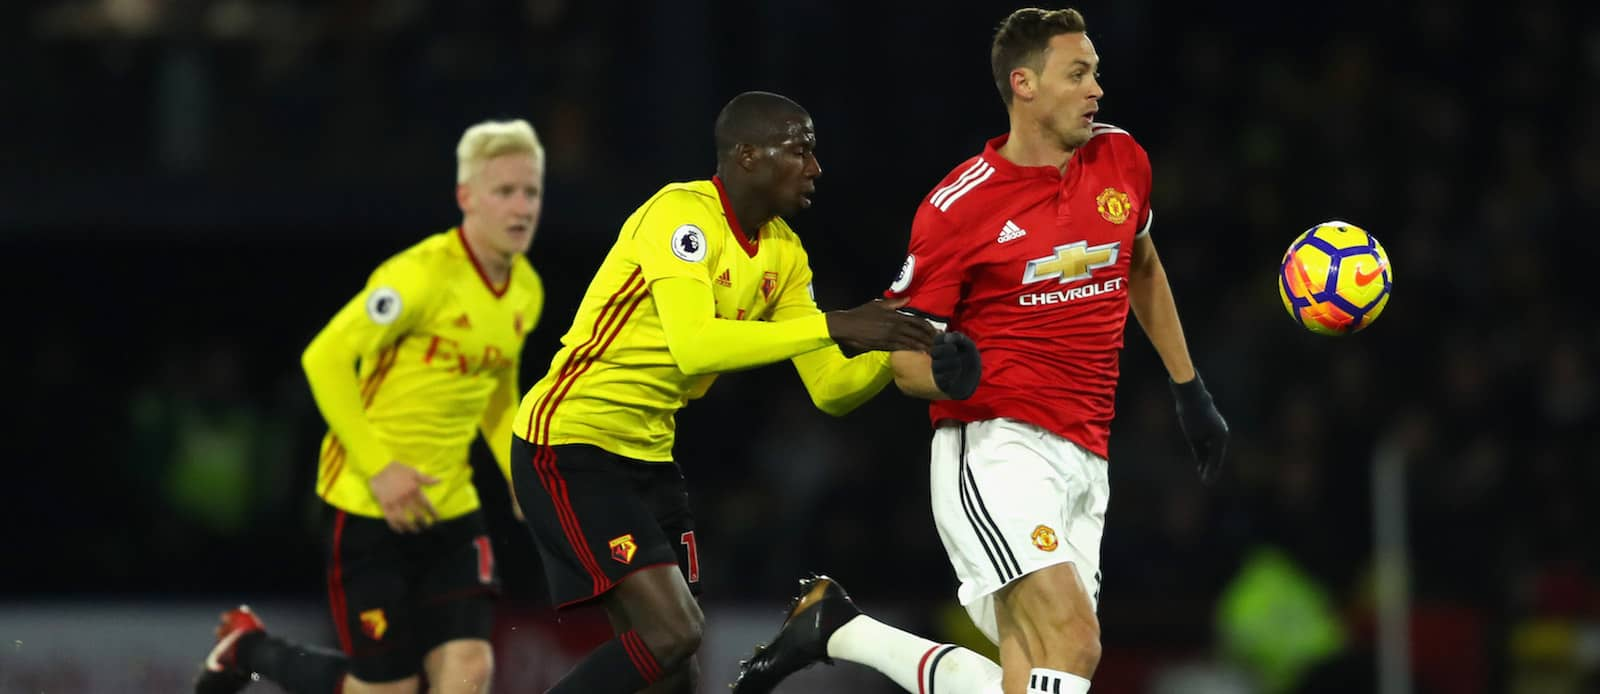 Nemanja Matic asked to come off with a muscular injury against Watford, reveals Jose Mourinho